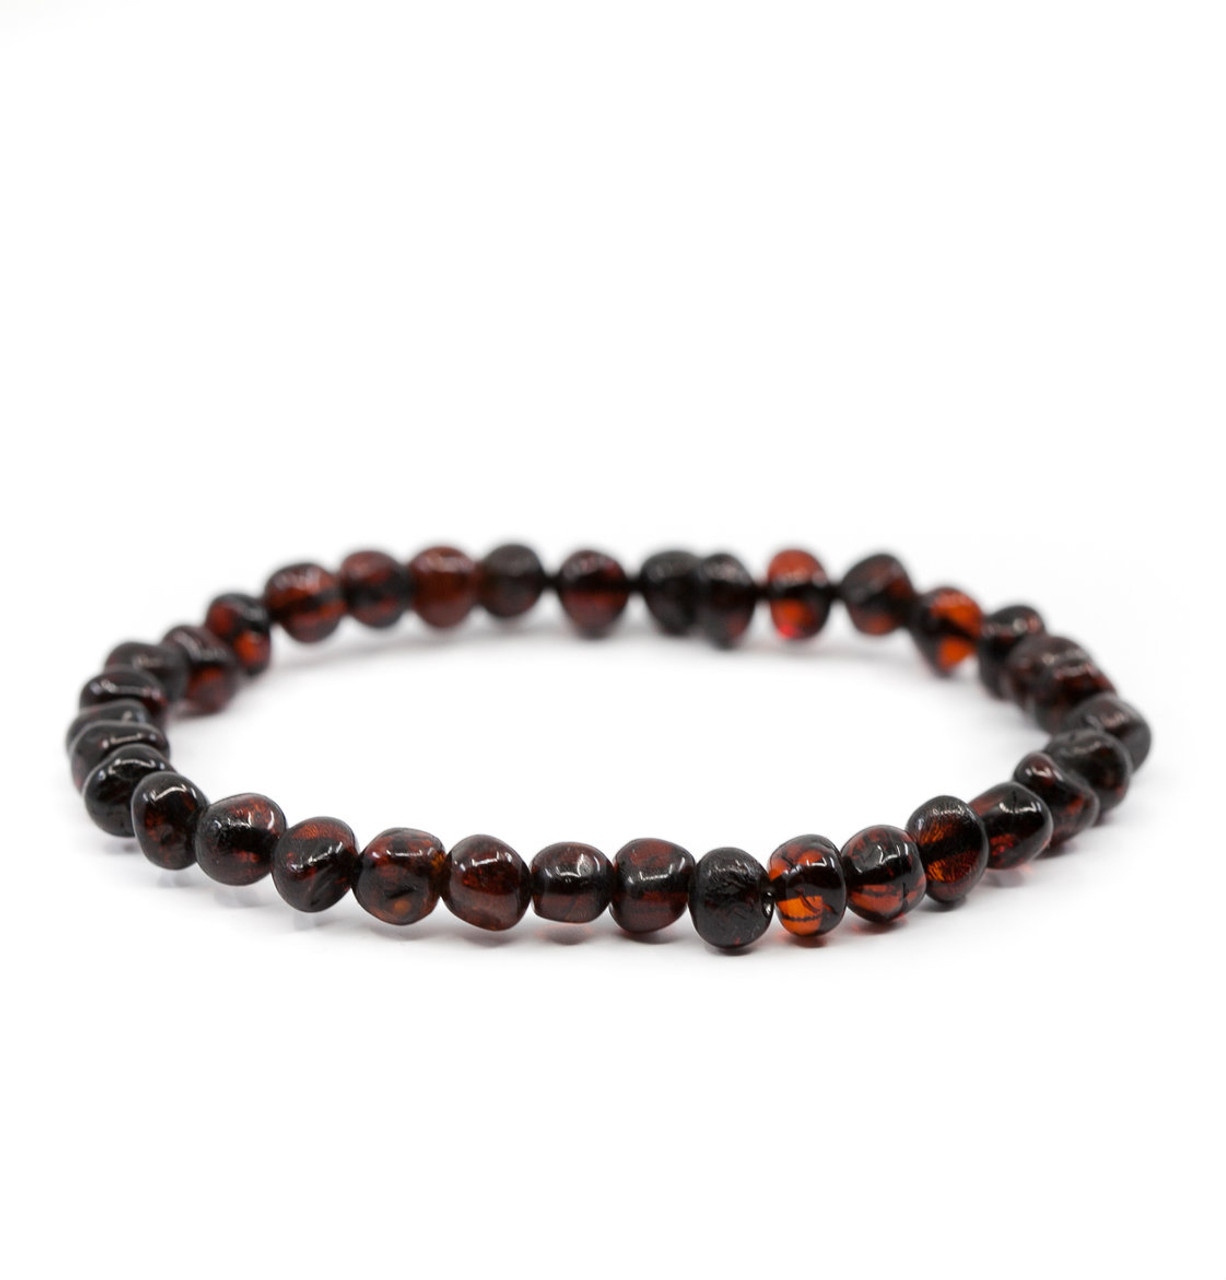 amazon bracelet with e stones dp f real and chakra jewelry j mala volcanic com lava men healing meditation s yoga women